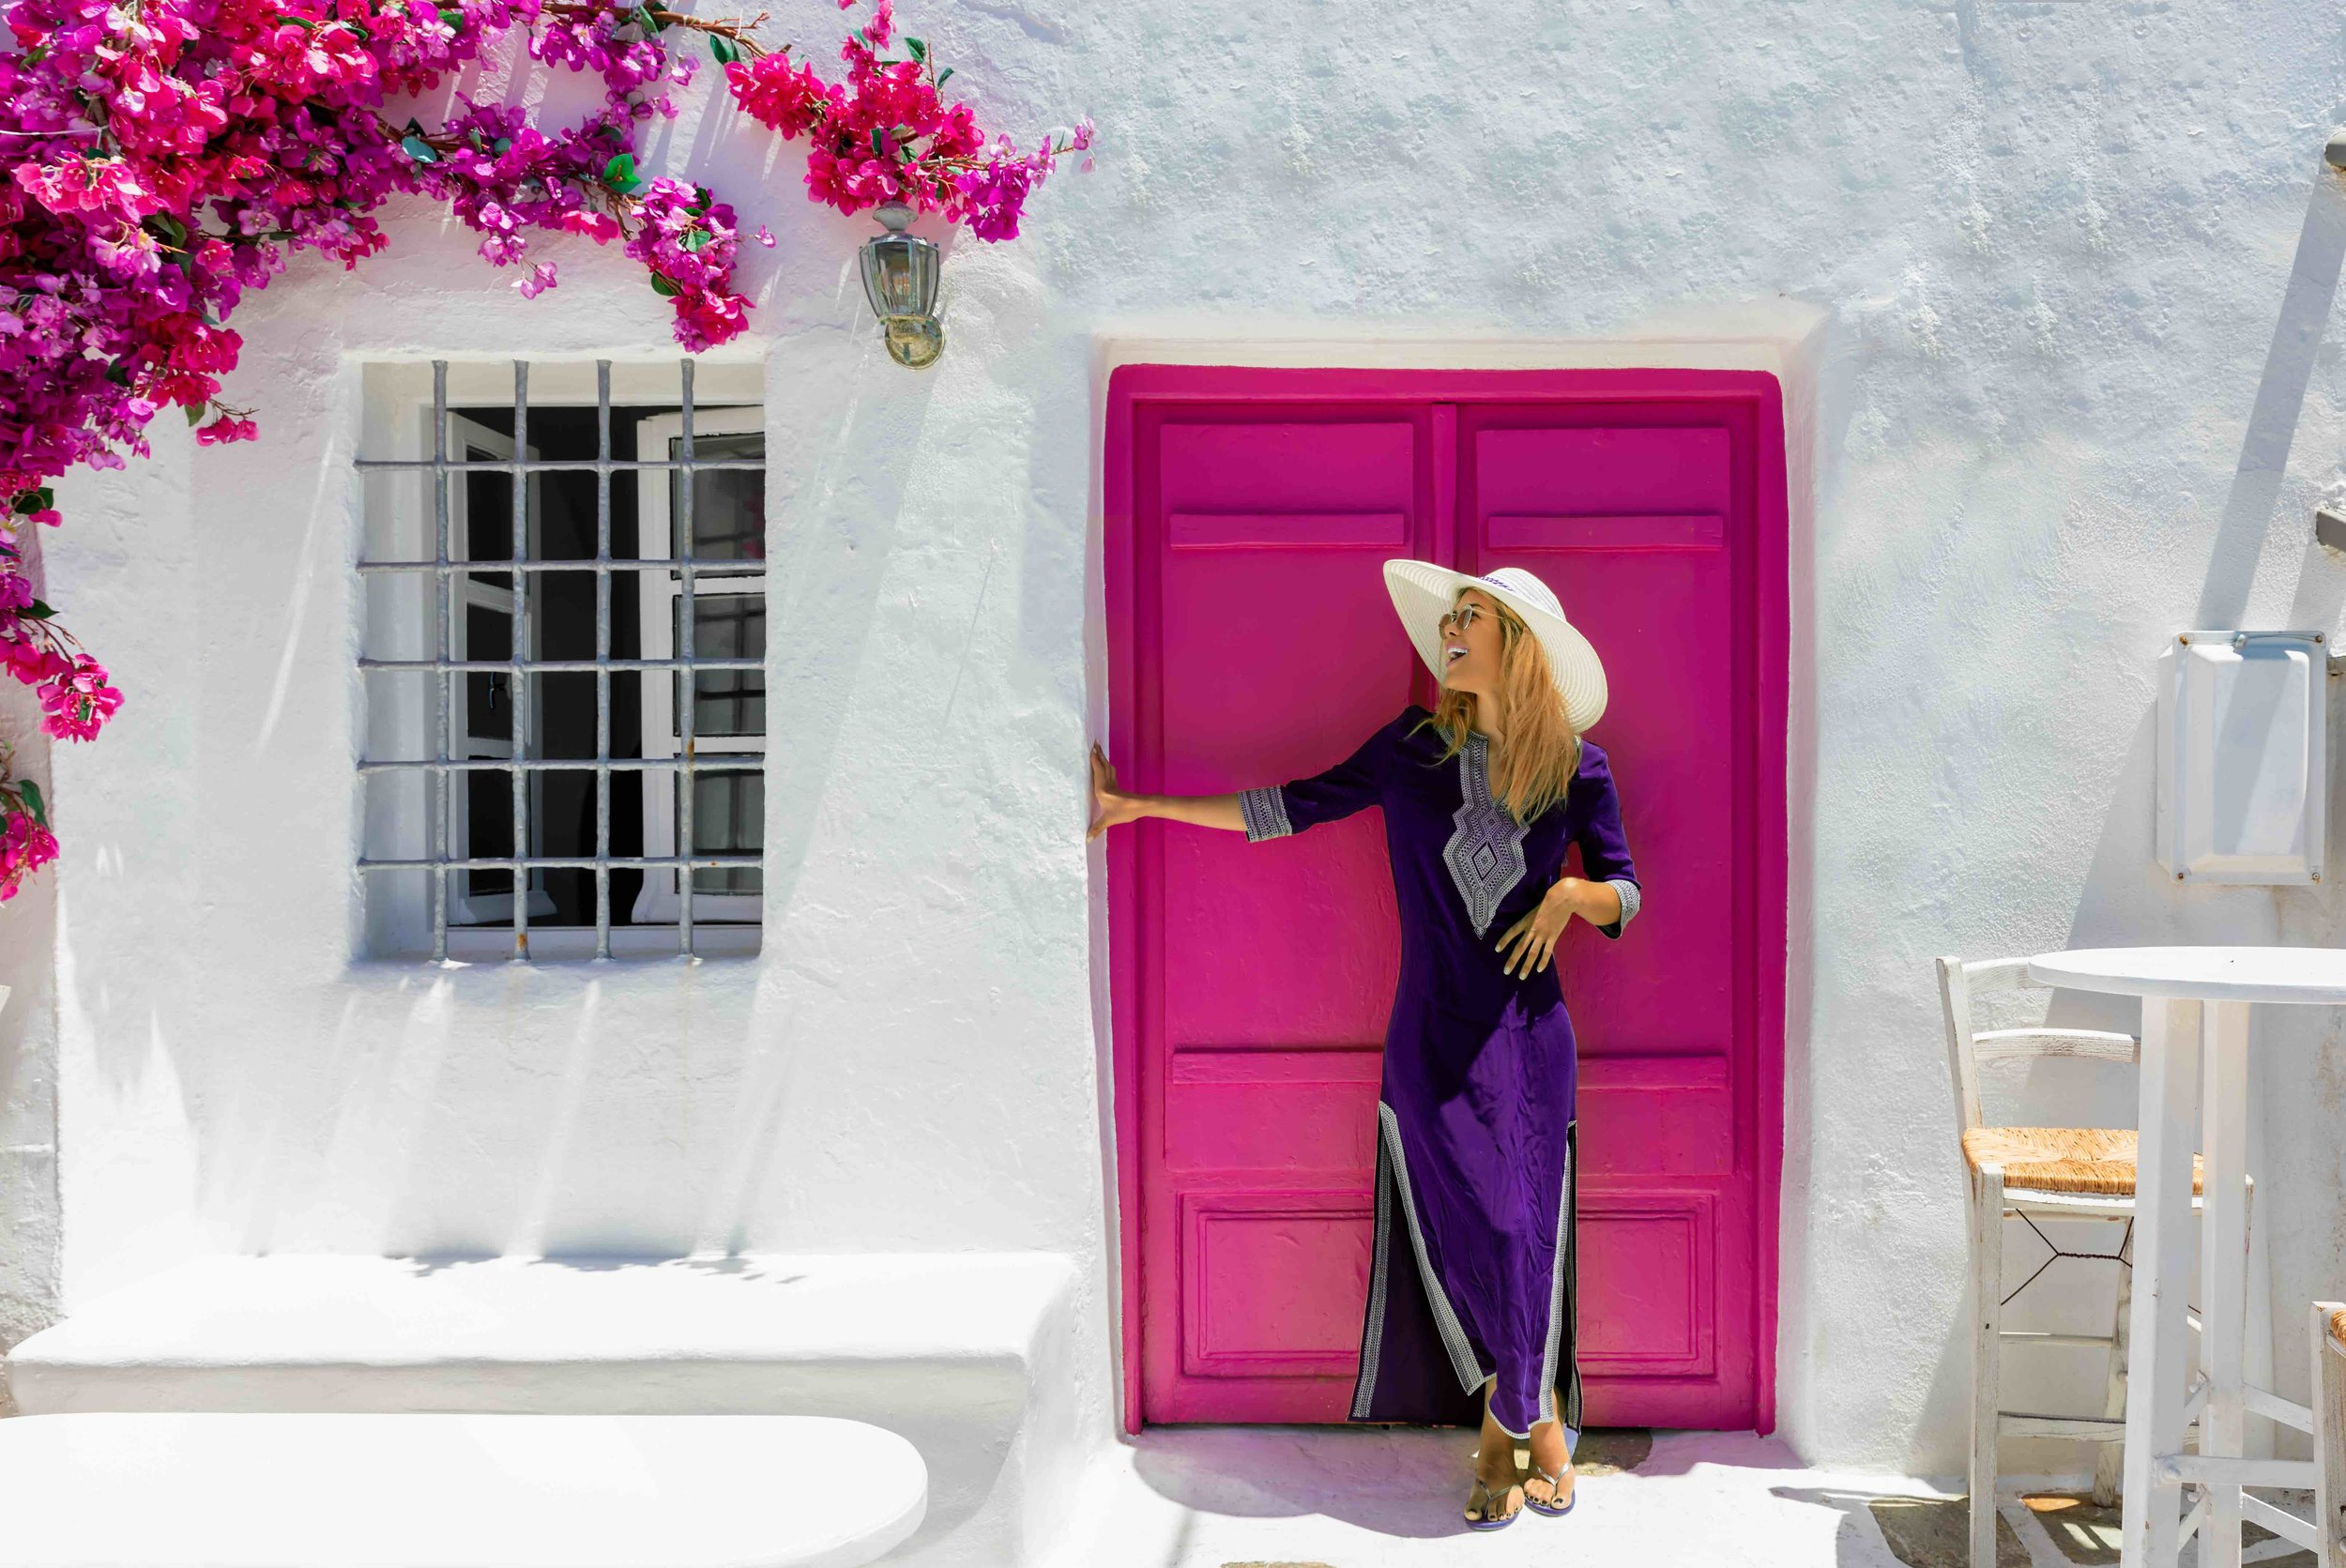 Women with Pink Door Greece.jpg